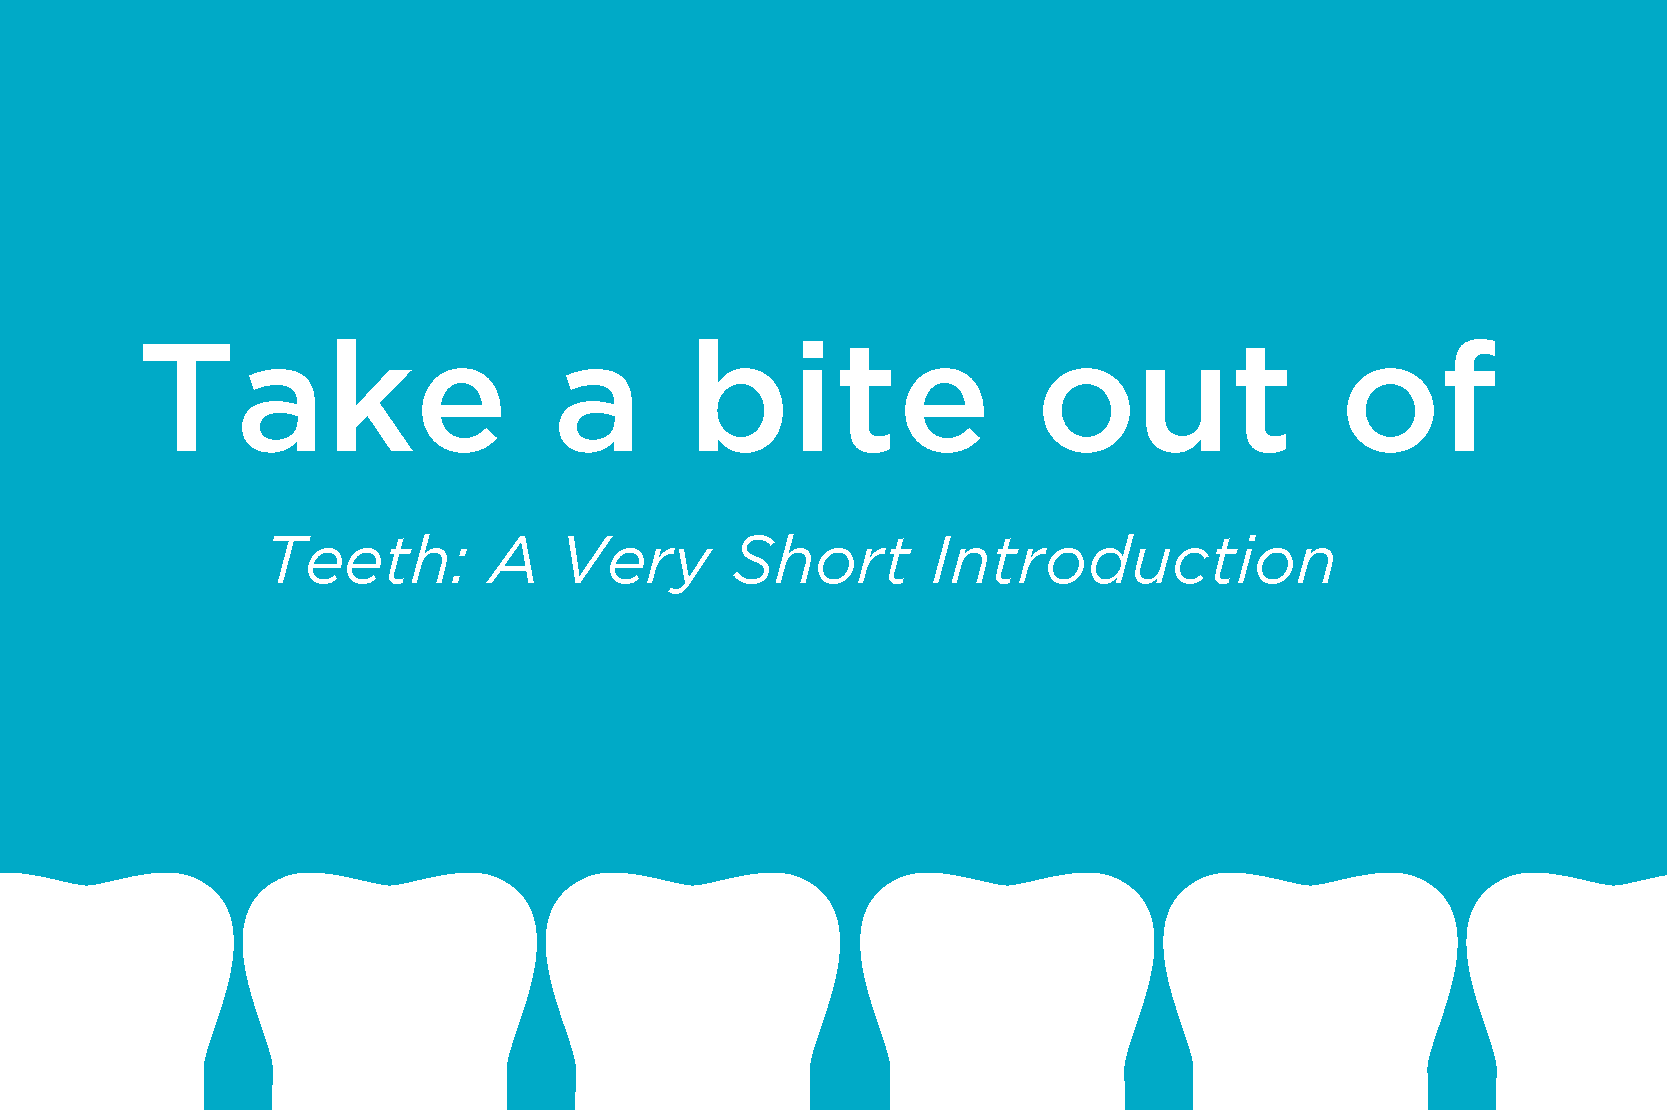 Take a bite out of teeth a very short introduction